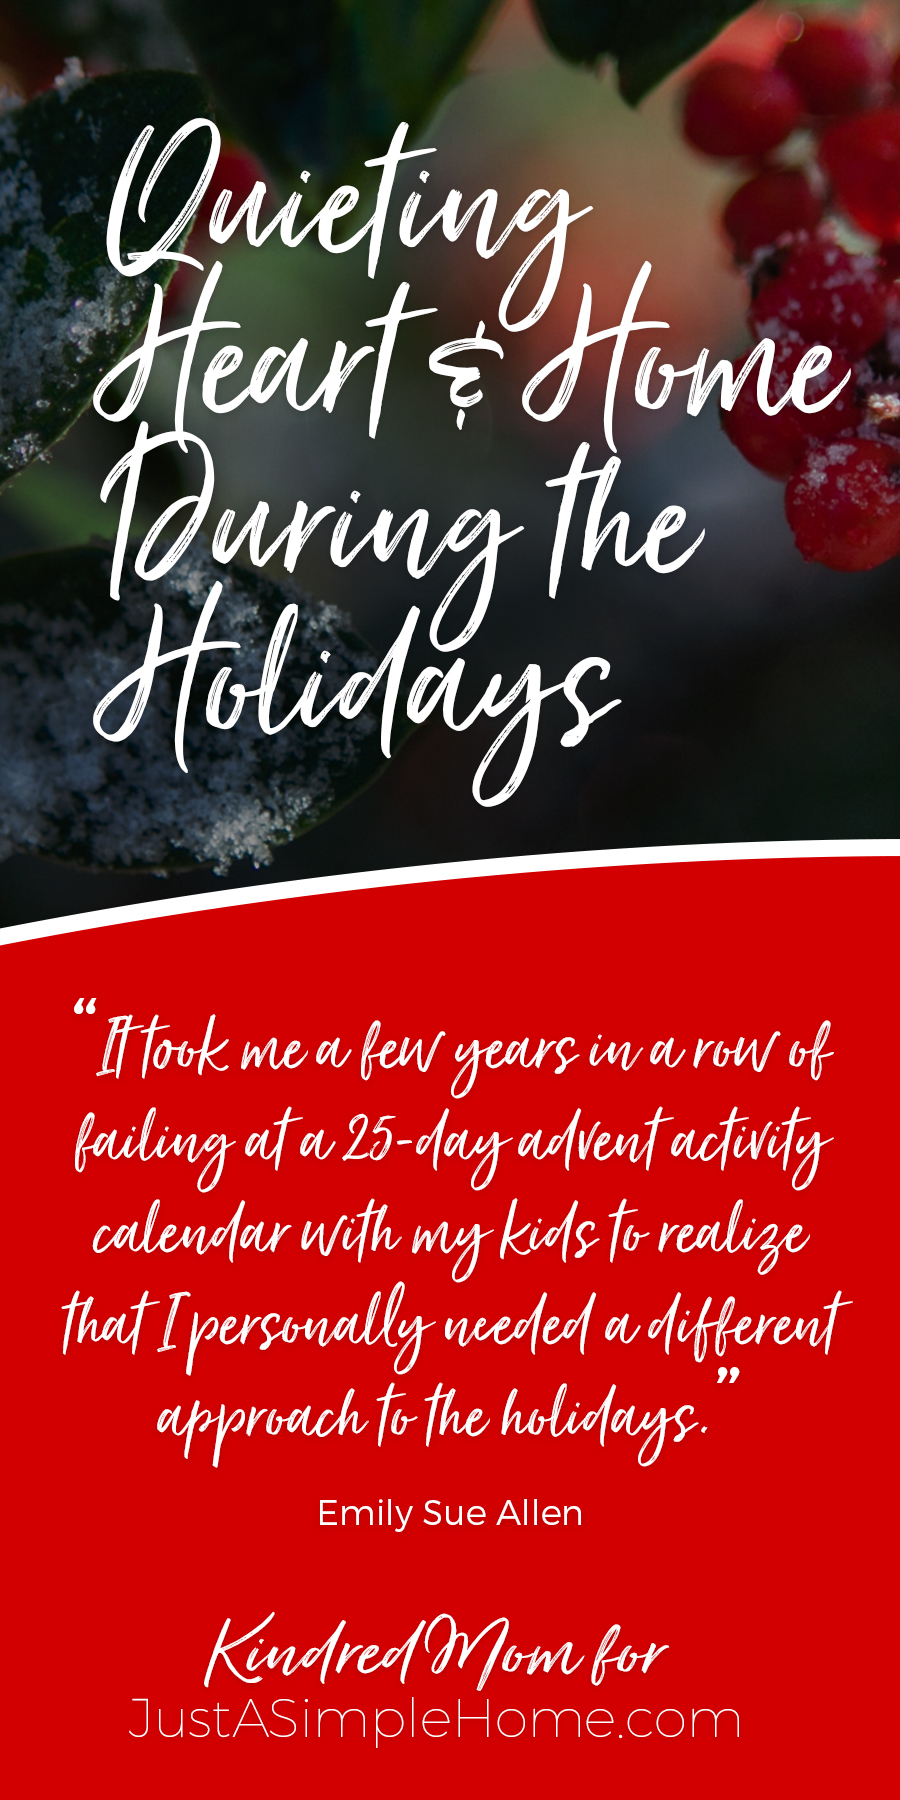 Quieting the Heart and Home During the Holidays